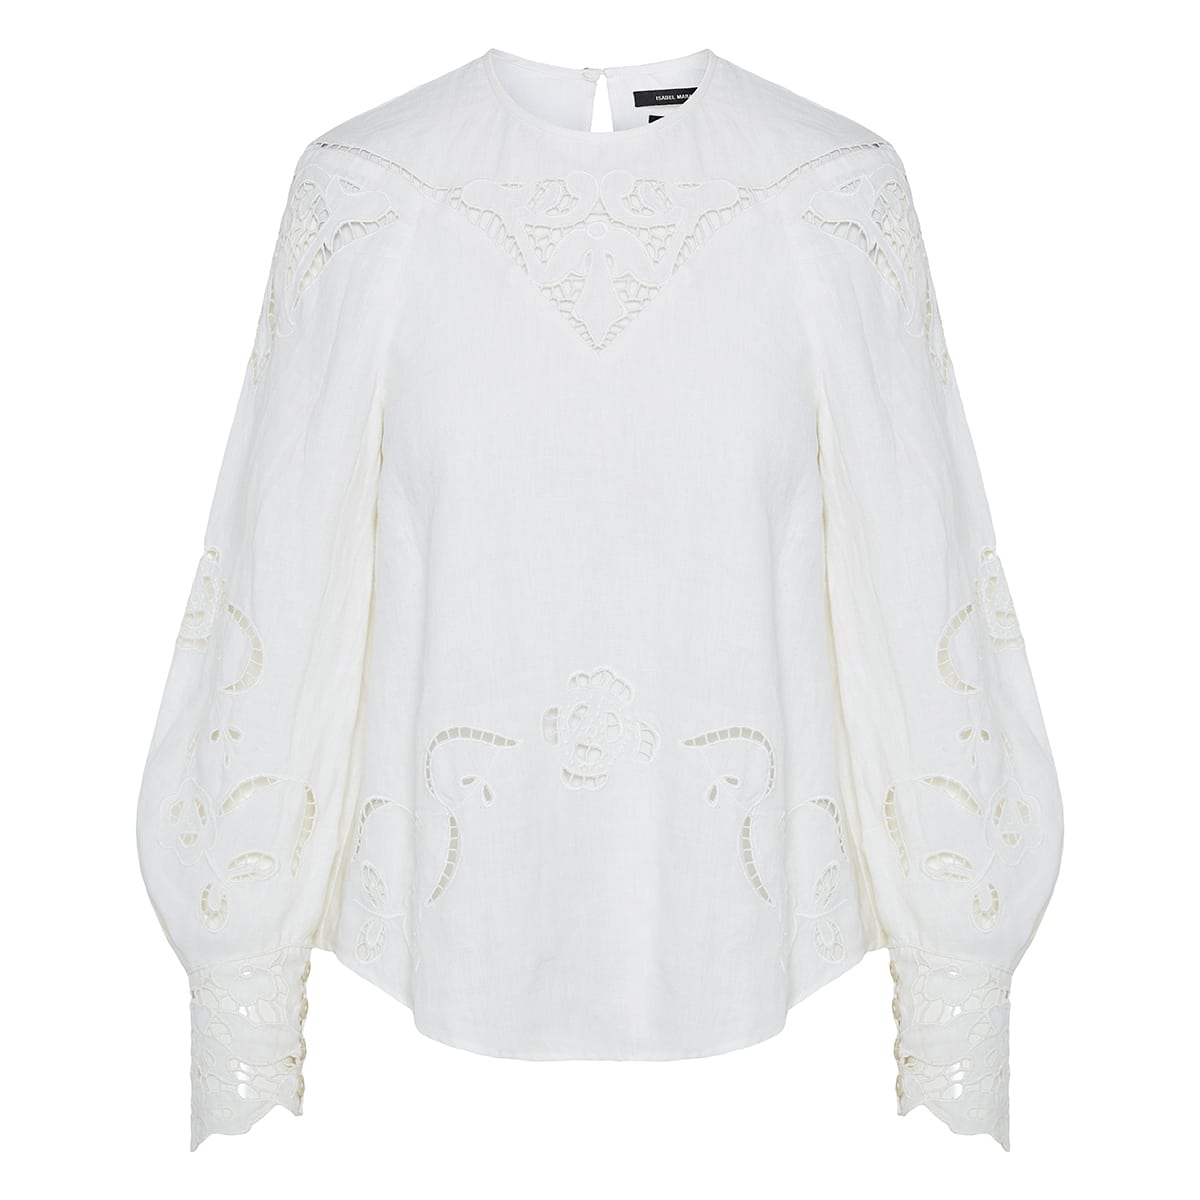 Emmett lace-detailed linen blouse